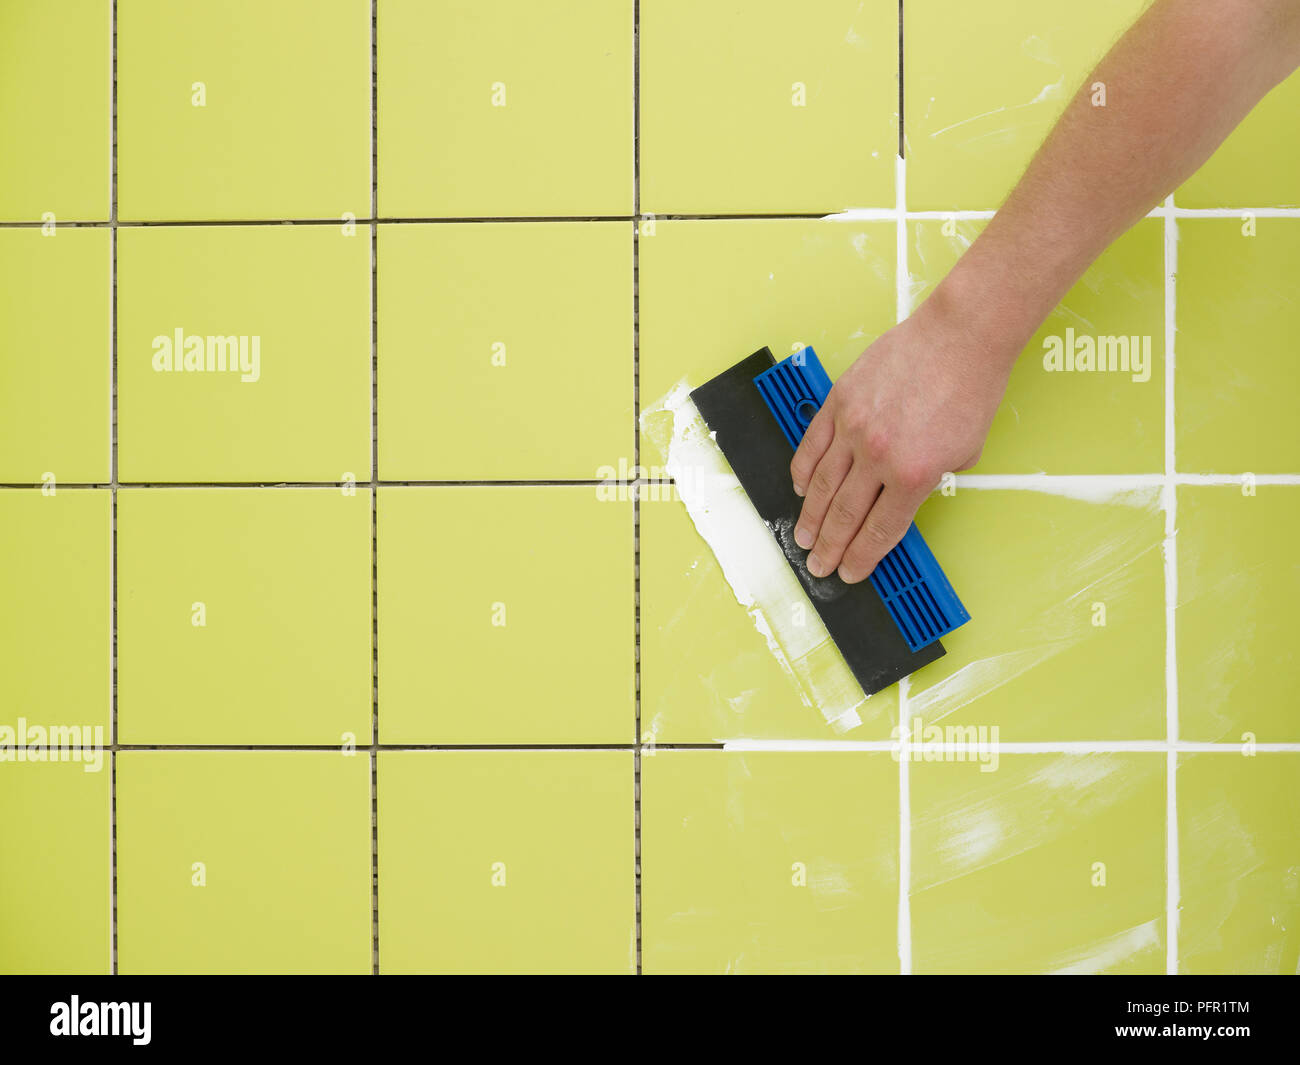 Man Grouting Ceramic Green Bathroom Tiles With Tile Grouter Stock